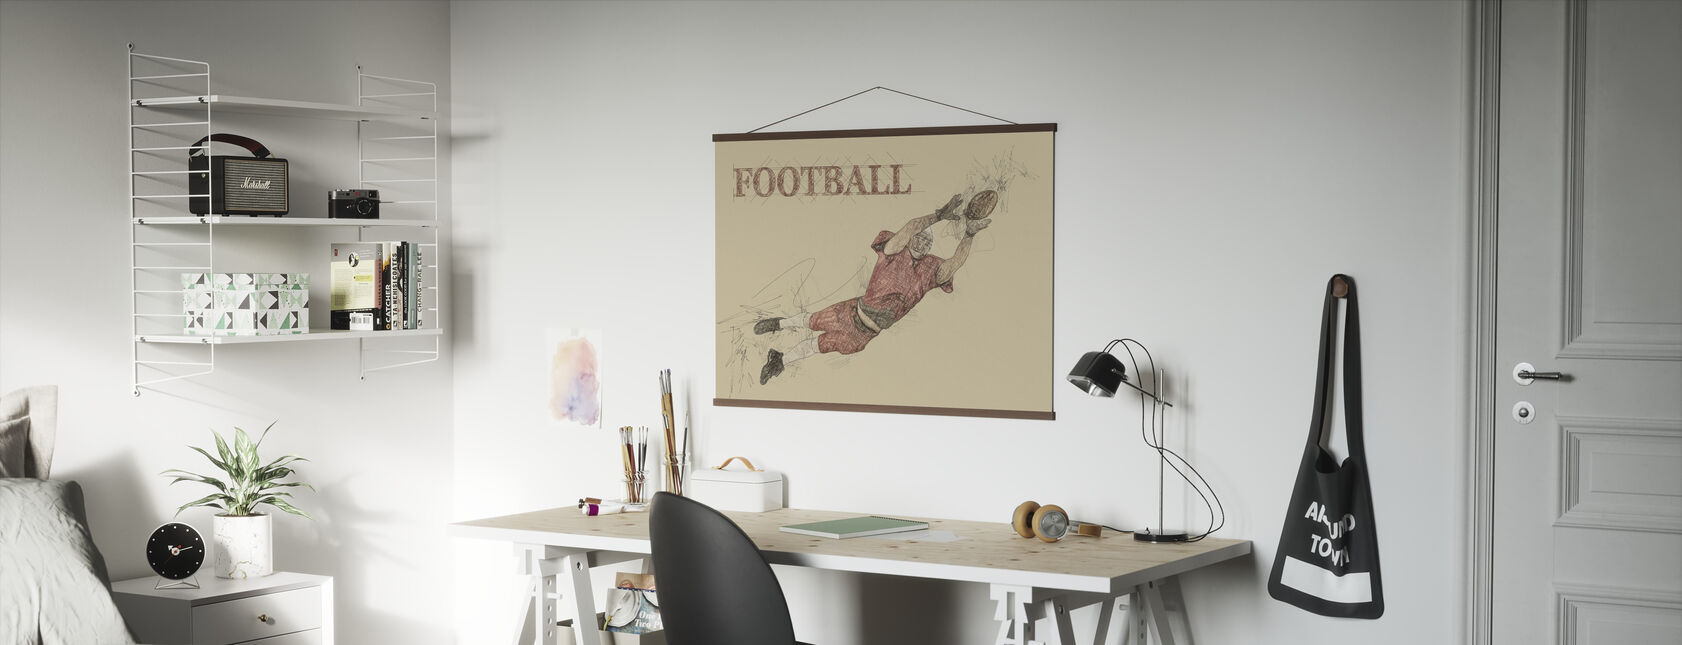 Football - Poster - Office